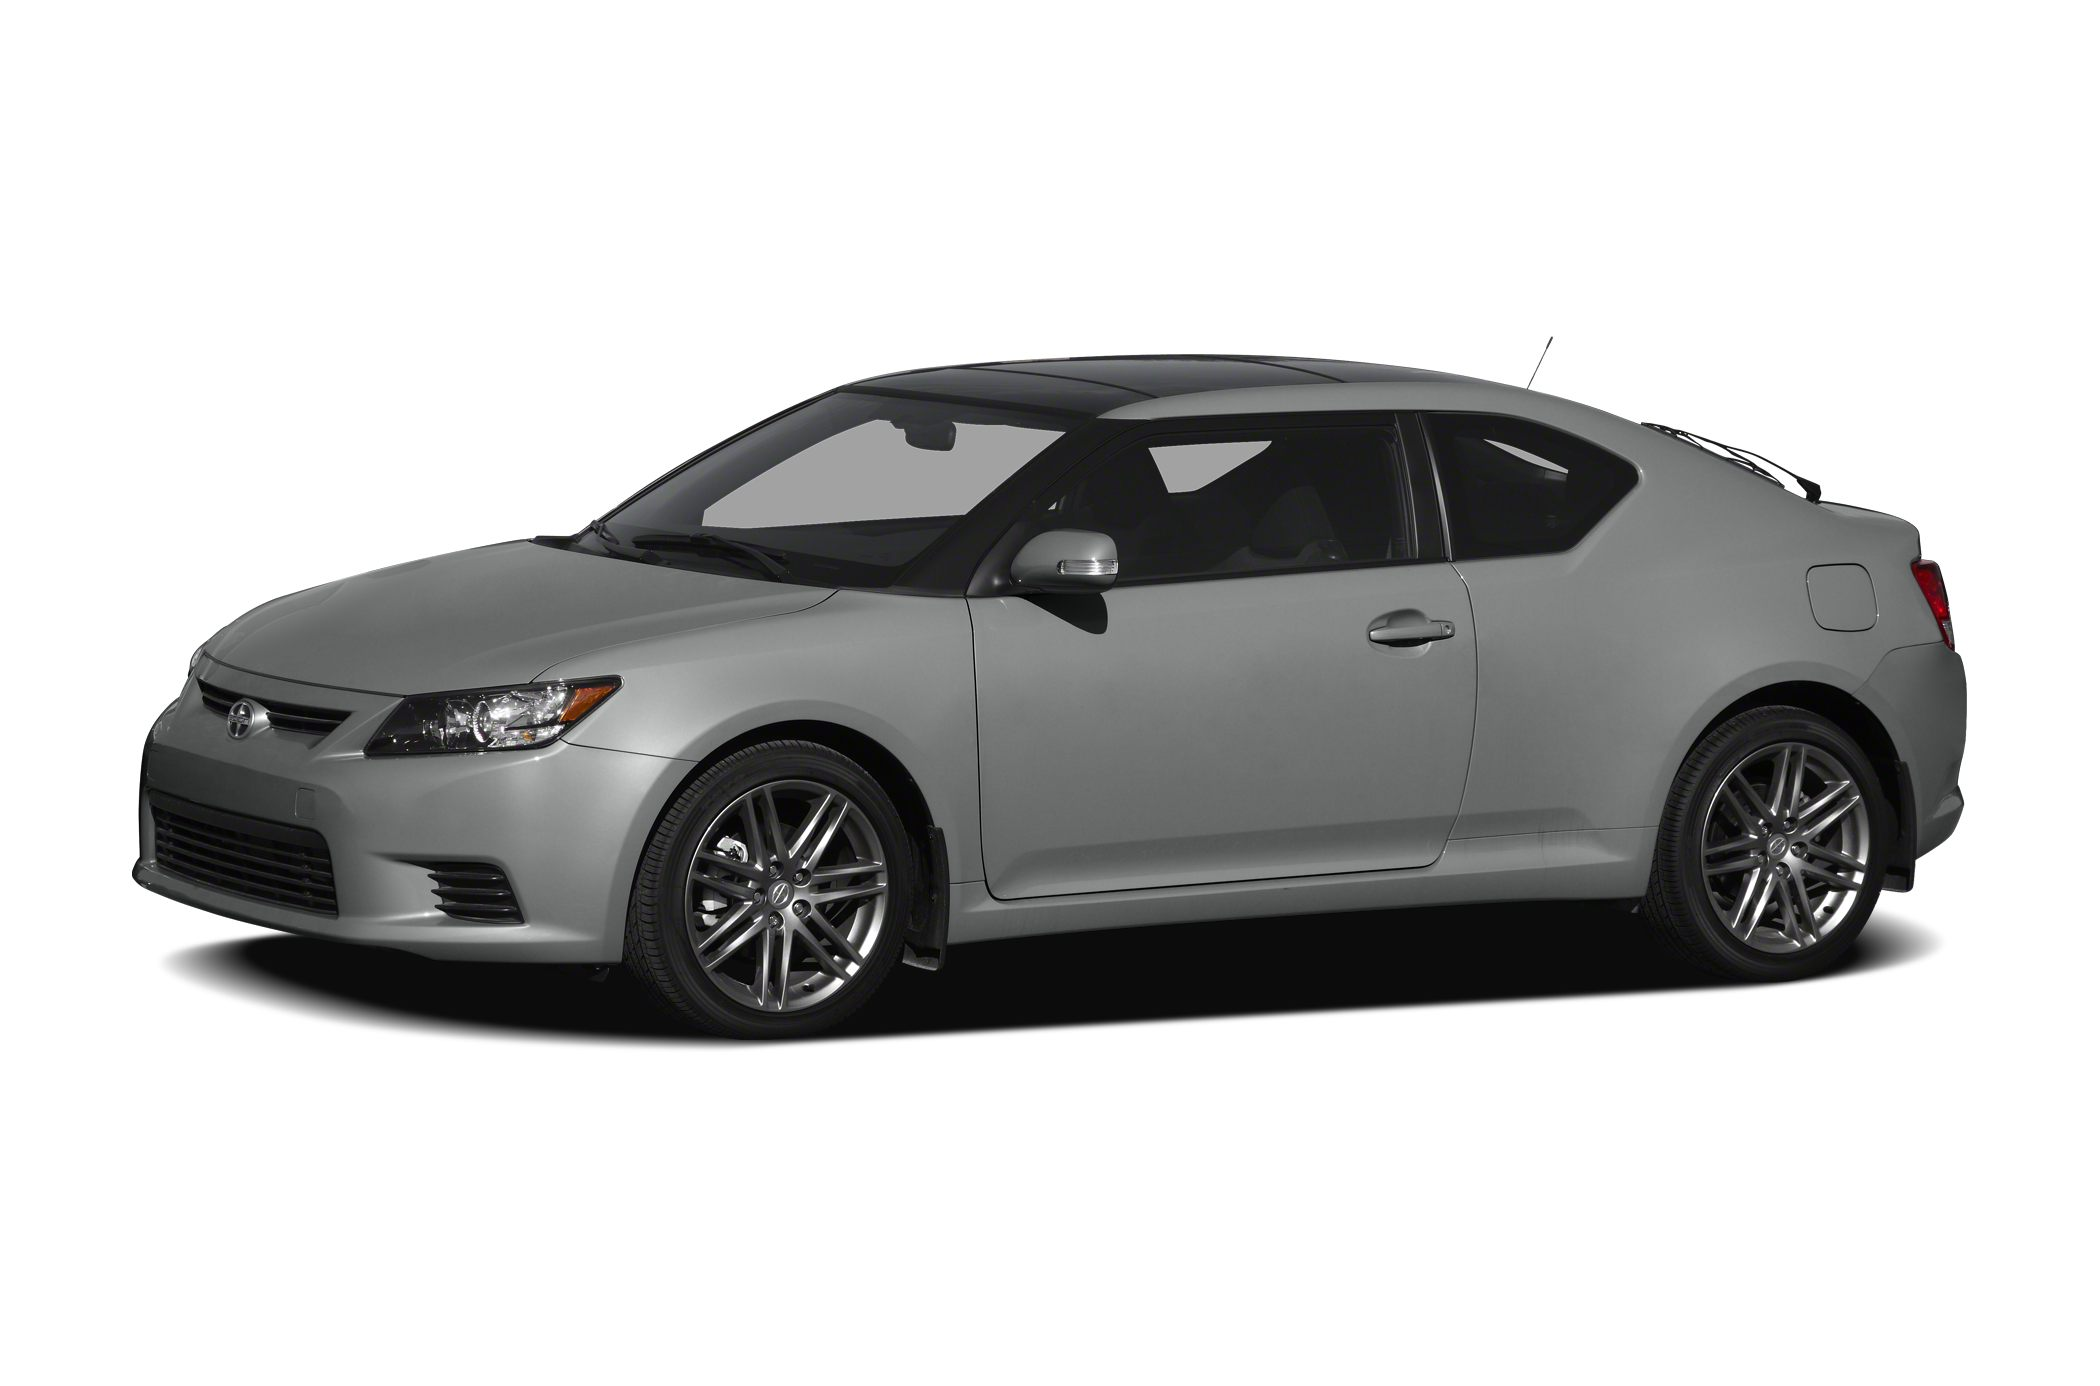 2012 Scion TC Base Coupe for sale in Stuart for $15,898 with 41,611 miles.